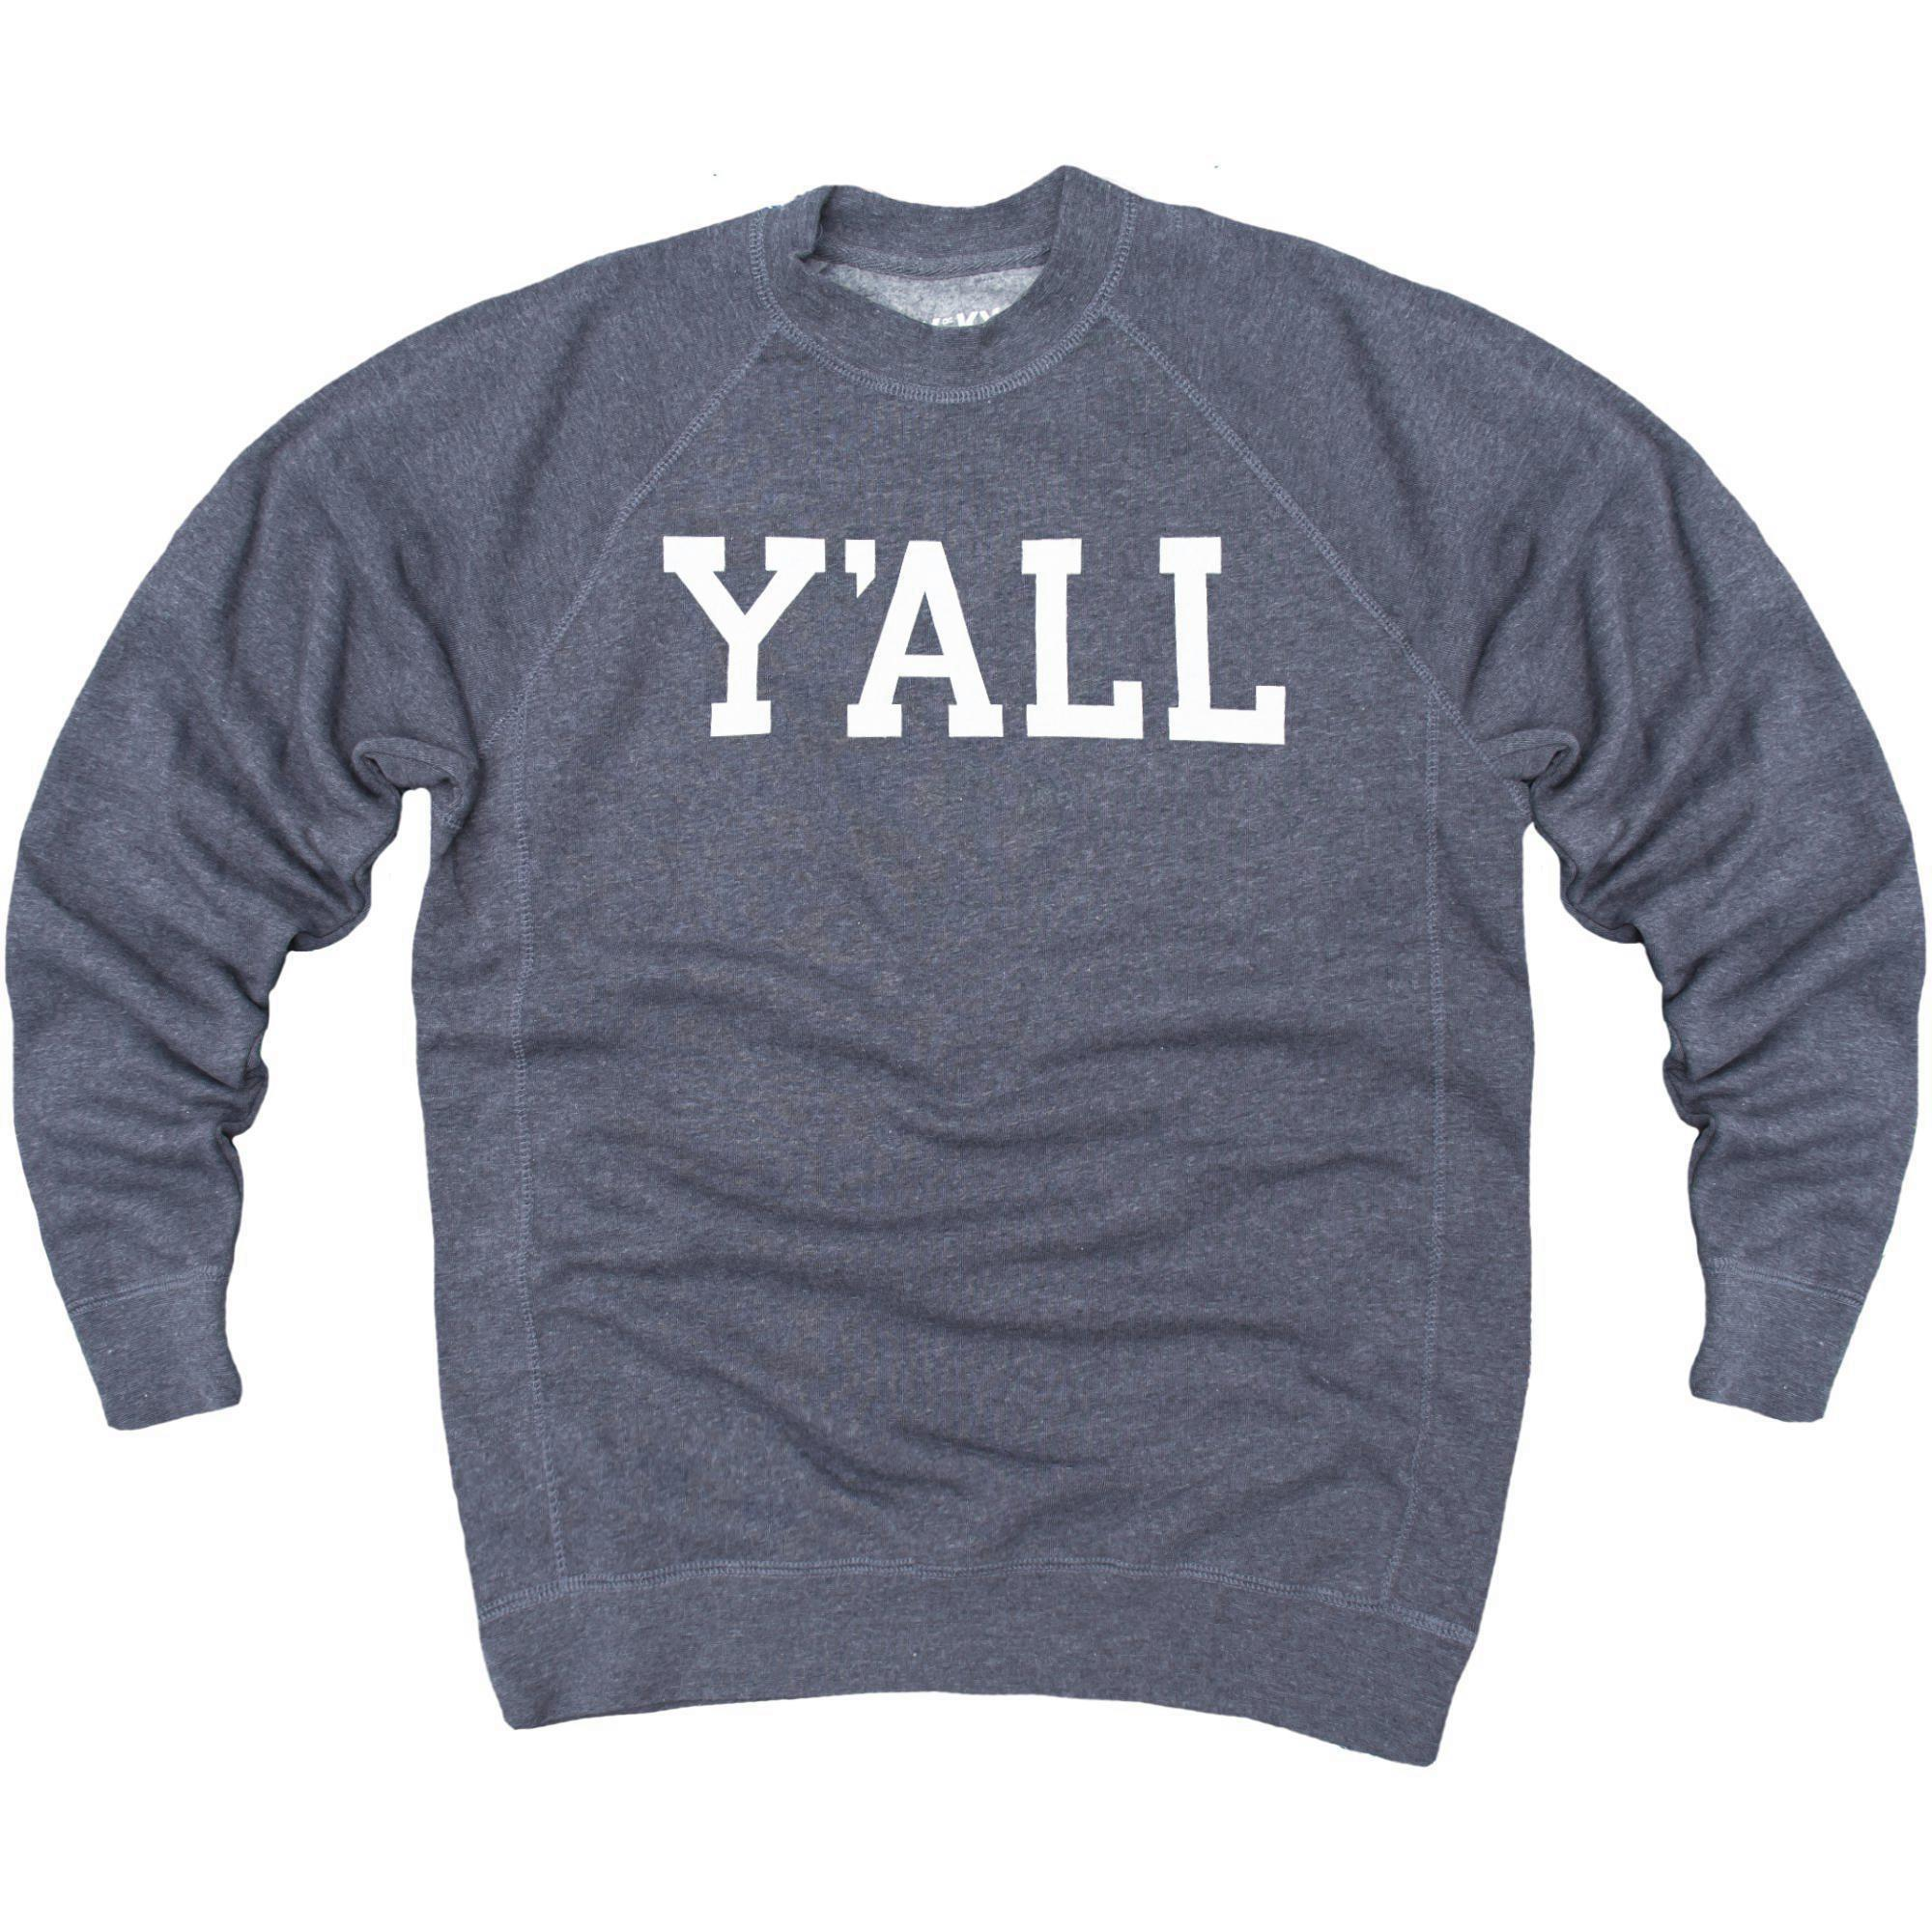 Y'ALL Sweatshirt (Navy)-Sweatshirt-Southern Socks